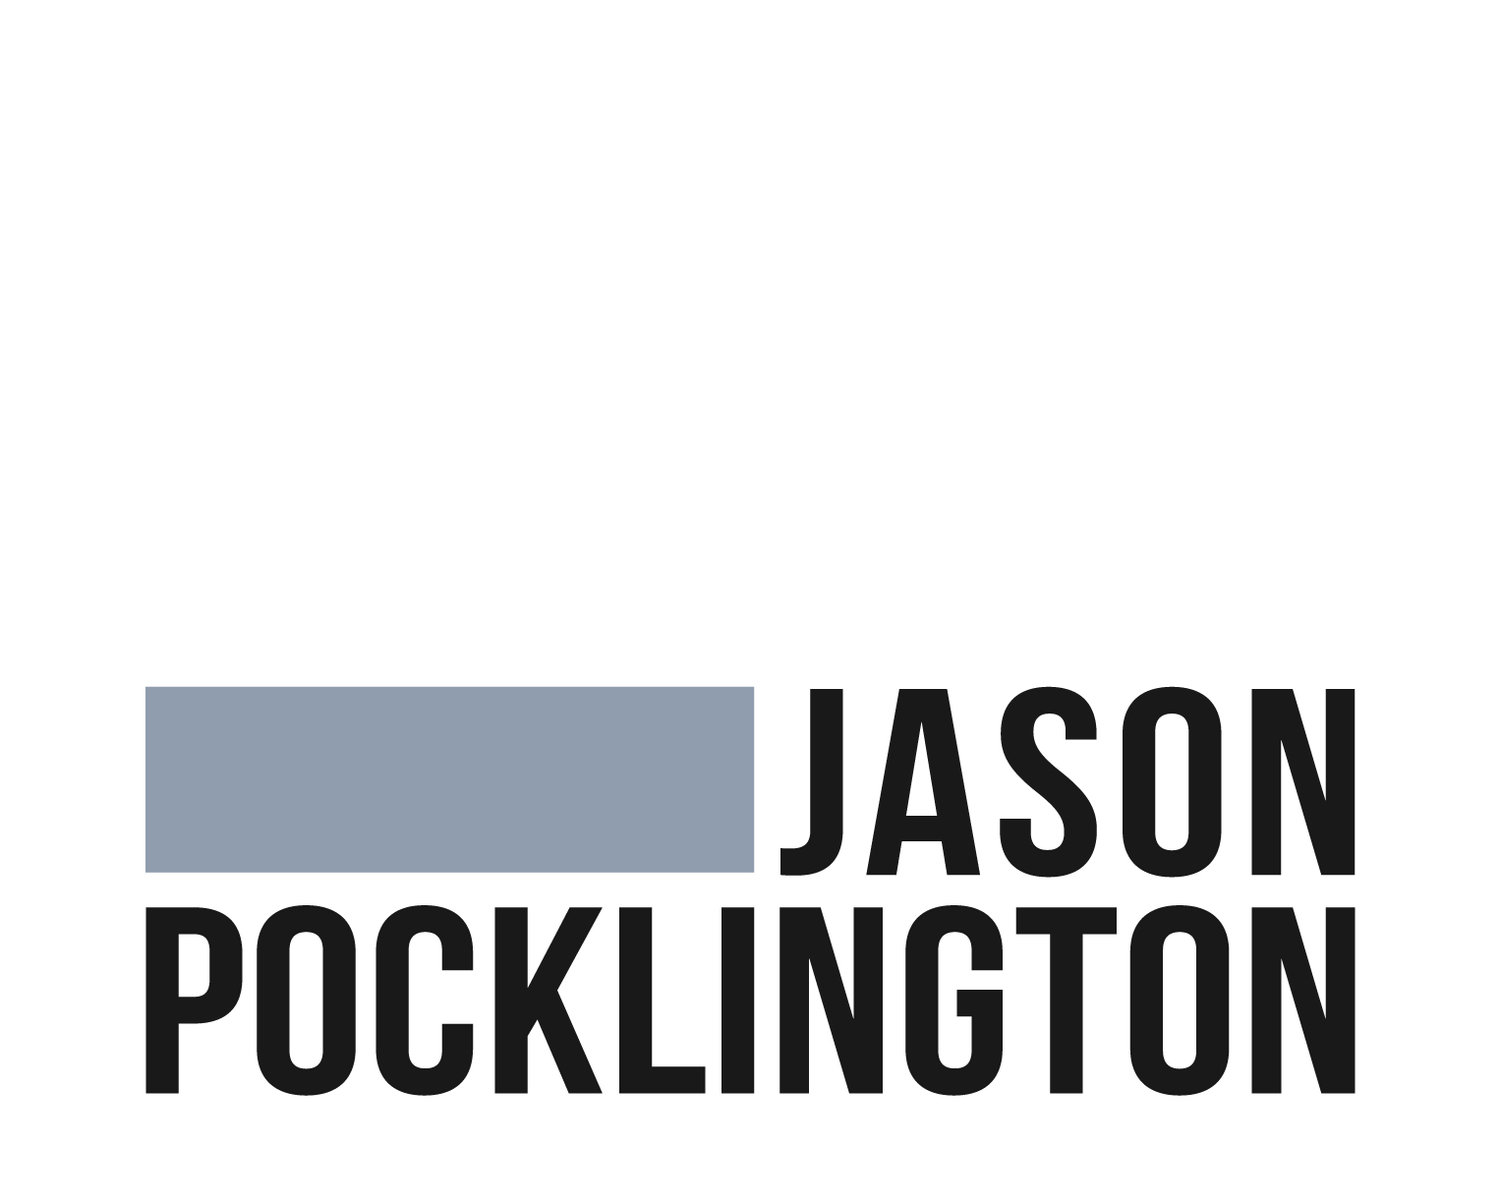 Jason Pocklington